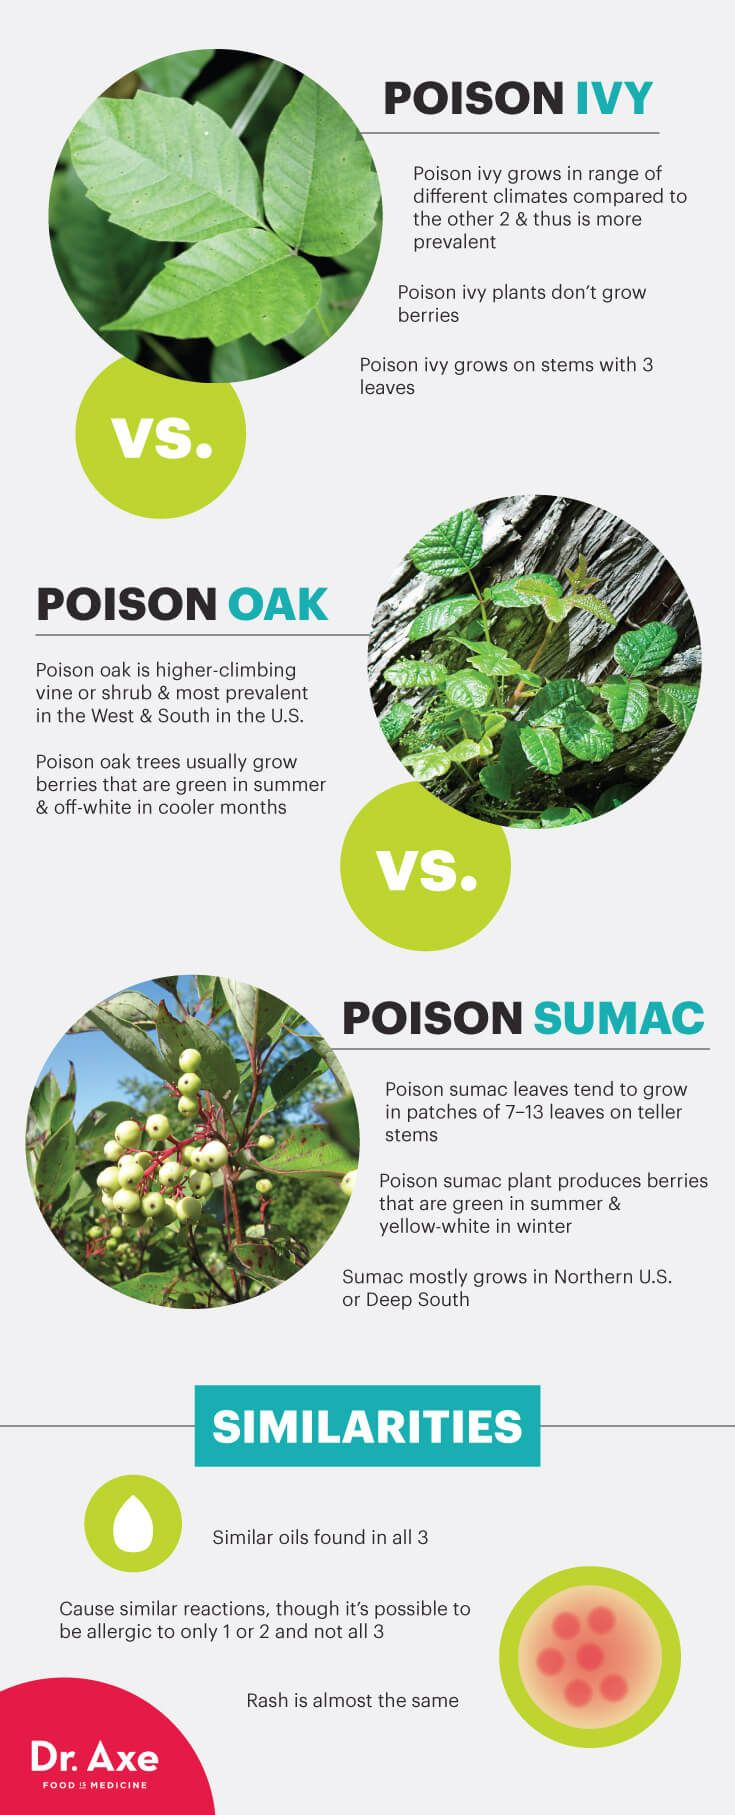 Poison ivy vs. poison oak vs. poison sumac - Dr. Axe http://www.draxe.com #health #holistic #natural